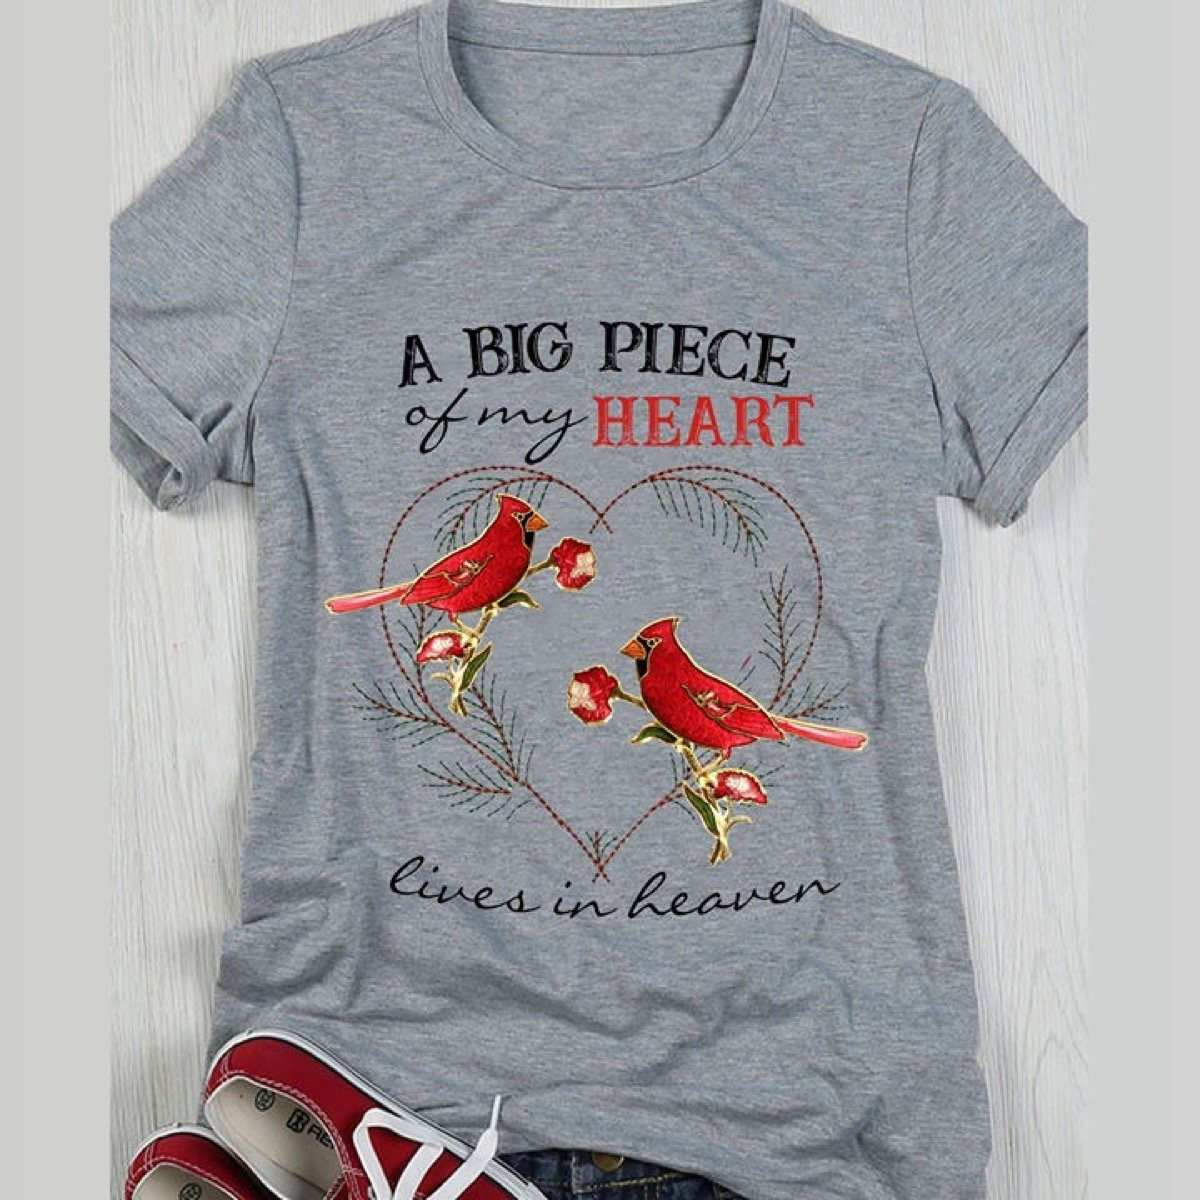 Free as a Bird T-shirt 11